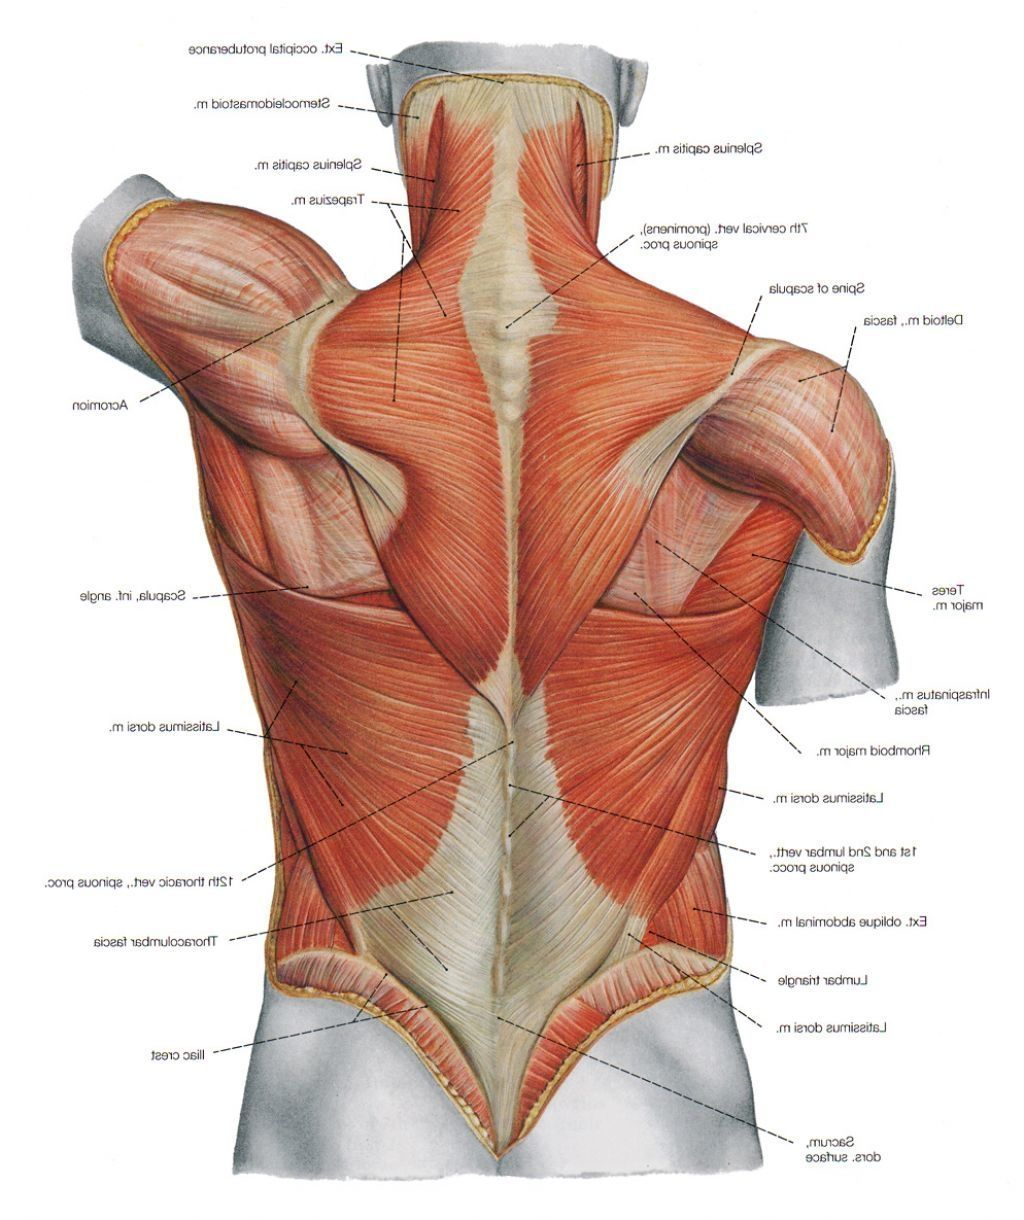 Back Muscles Anatomy Anatomy Of The Back Muscles Anatomy Of Human